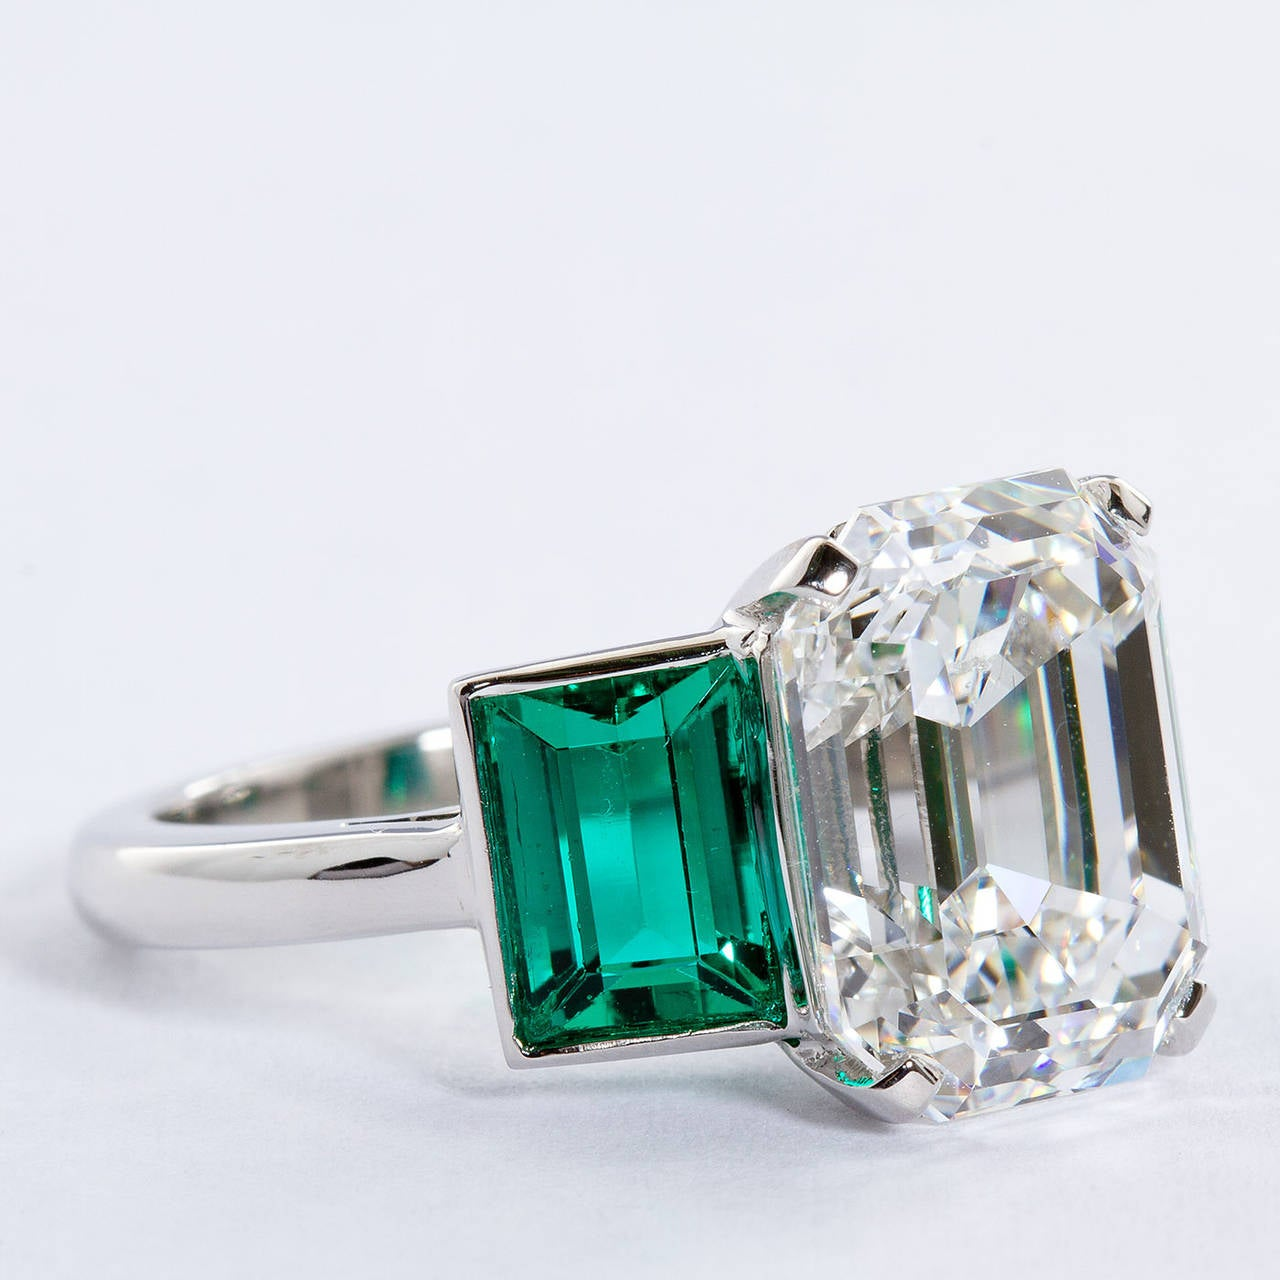 white cut engagement in i emerald h diamond si six rings classic setting ring stone prong gold set side